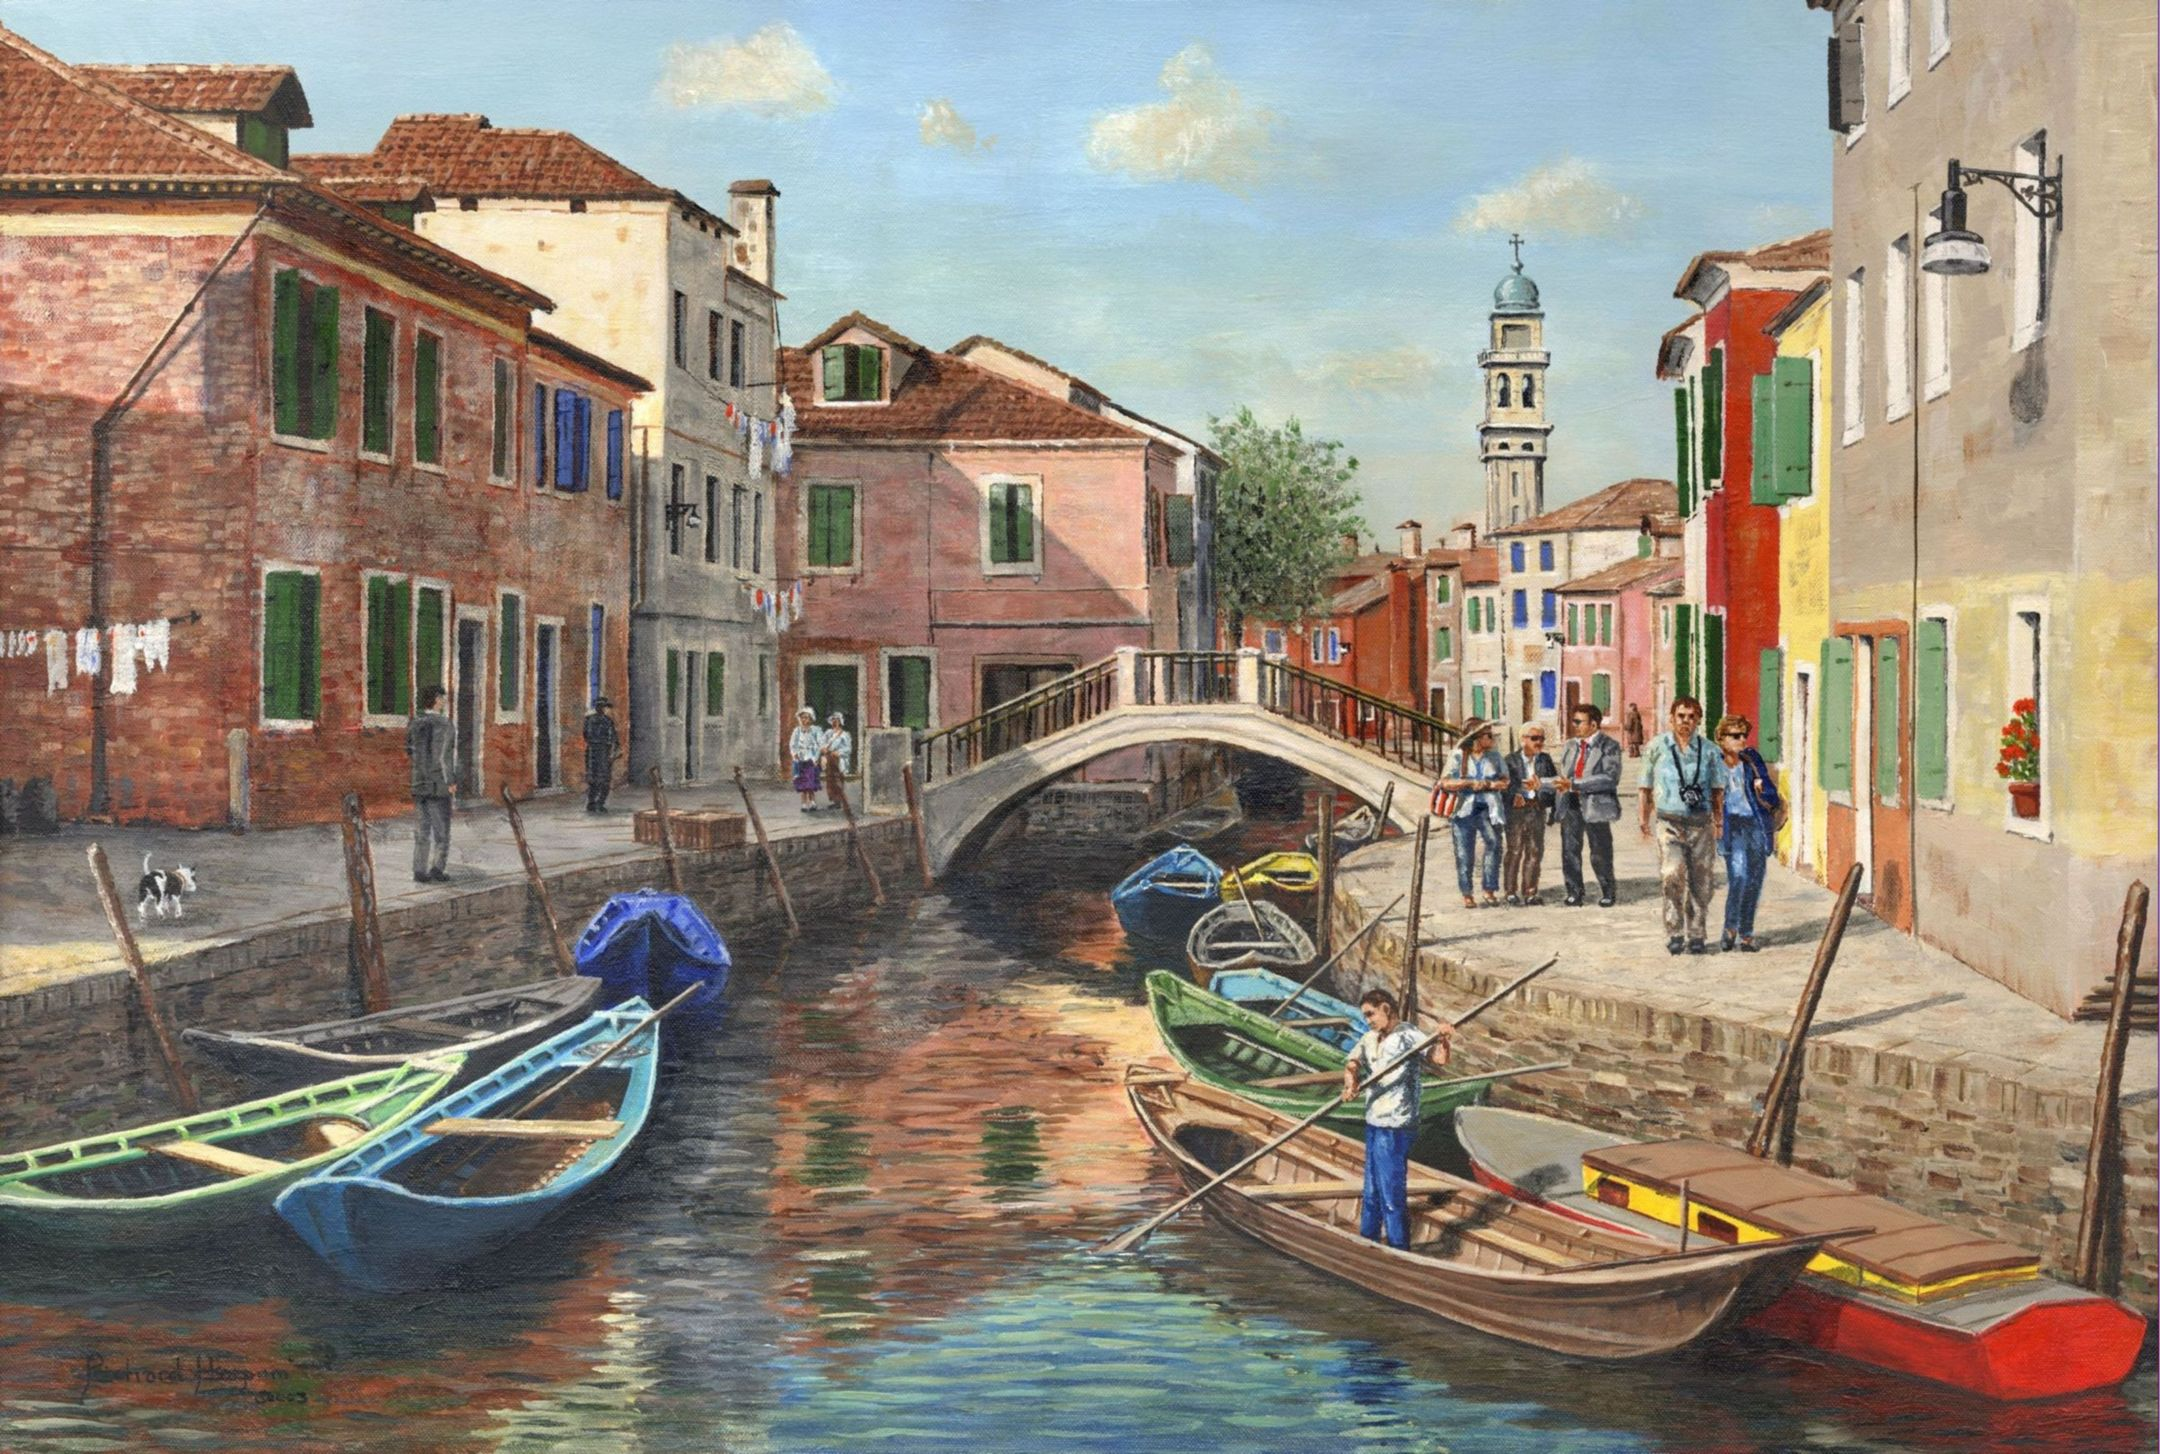 Painting - Burano Canal (Venice)